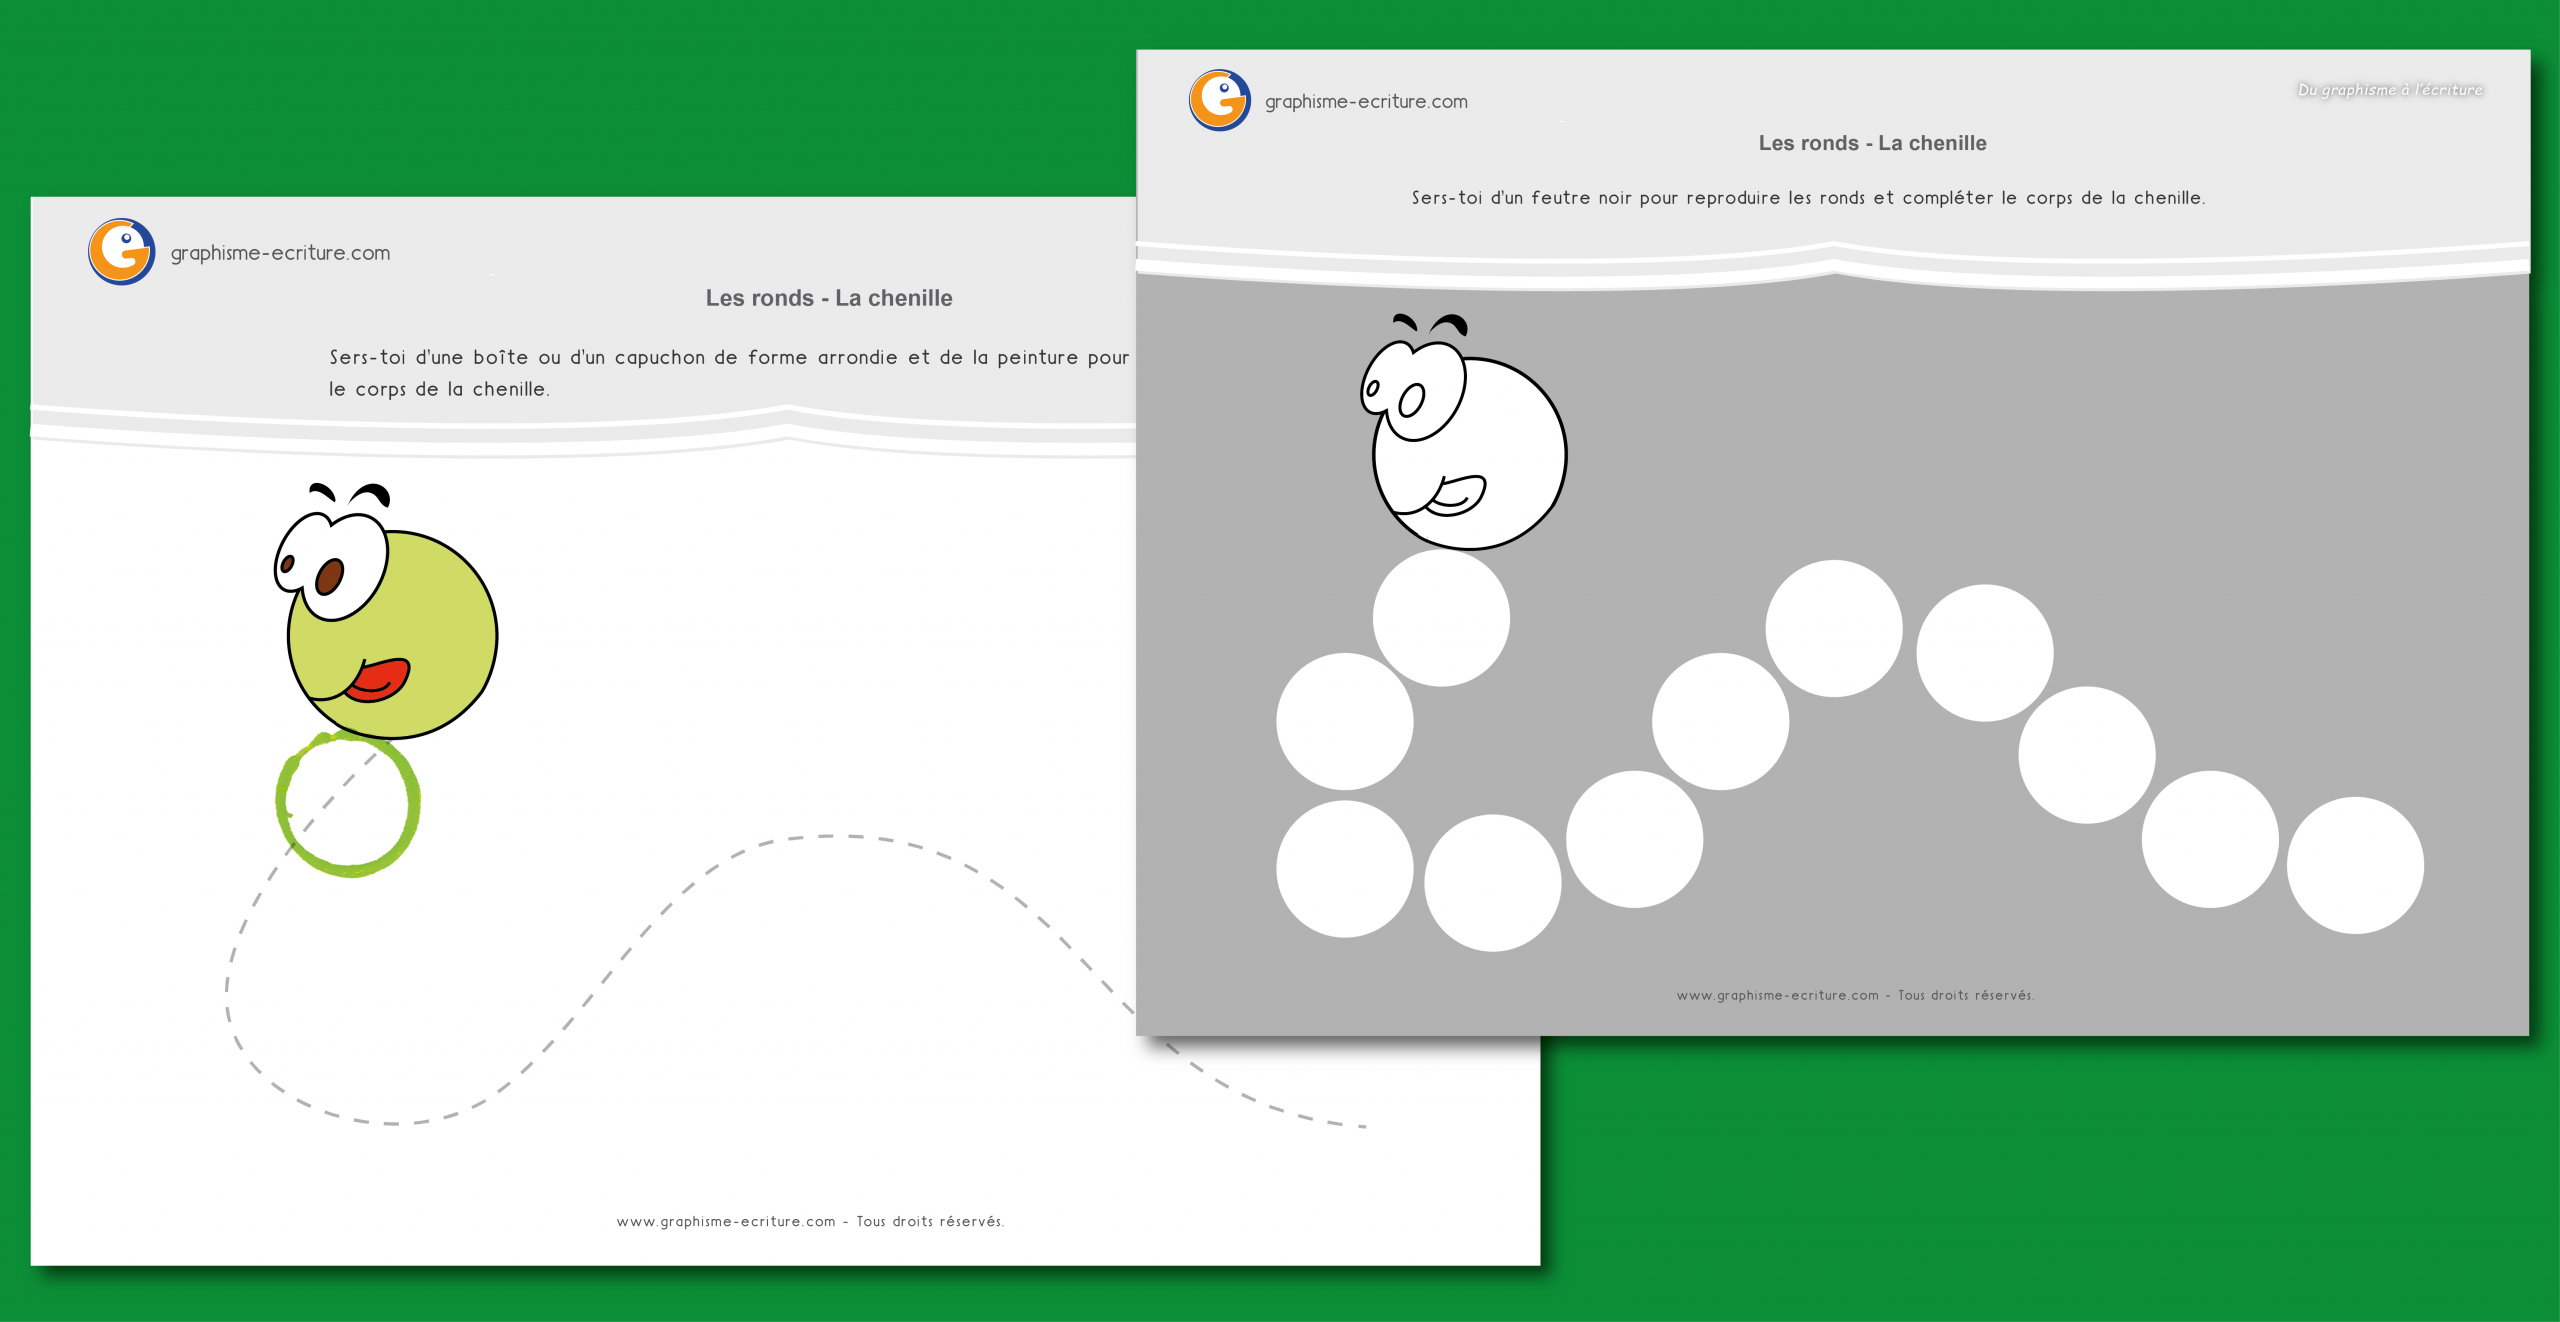 Graphisme Maternelle Les Ronds | Exercice Maternelle Ps Ms Gs Cp tout Fiche Graphisme Maternelle